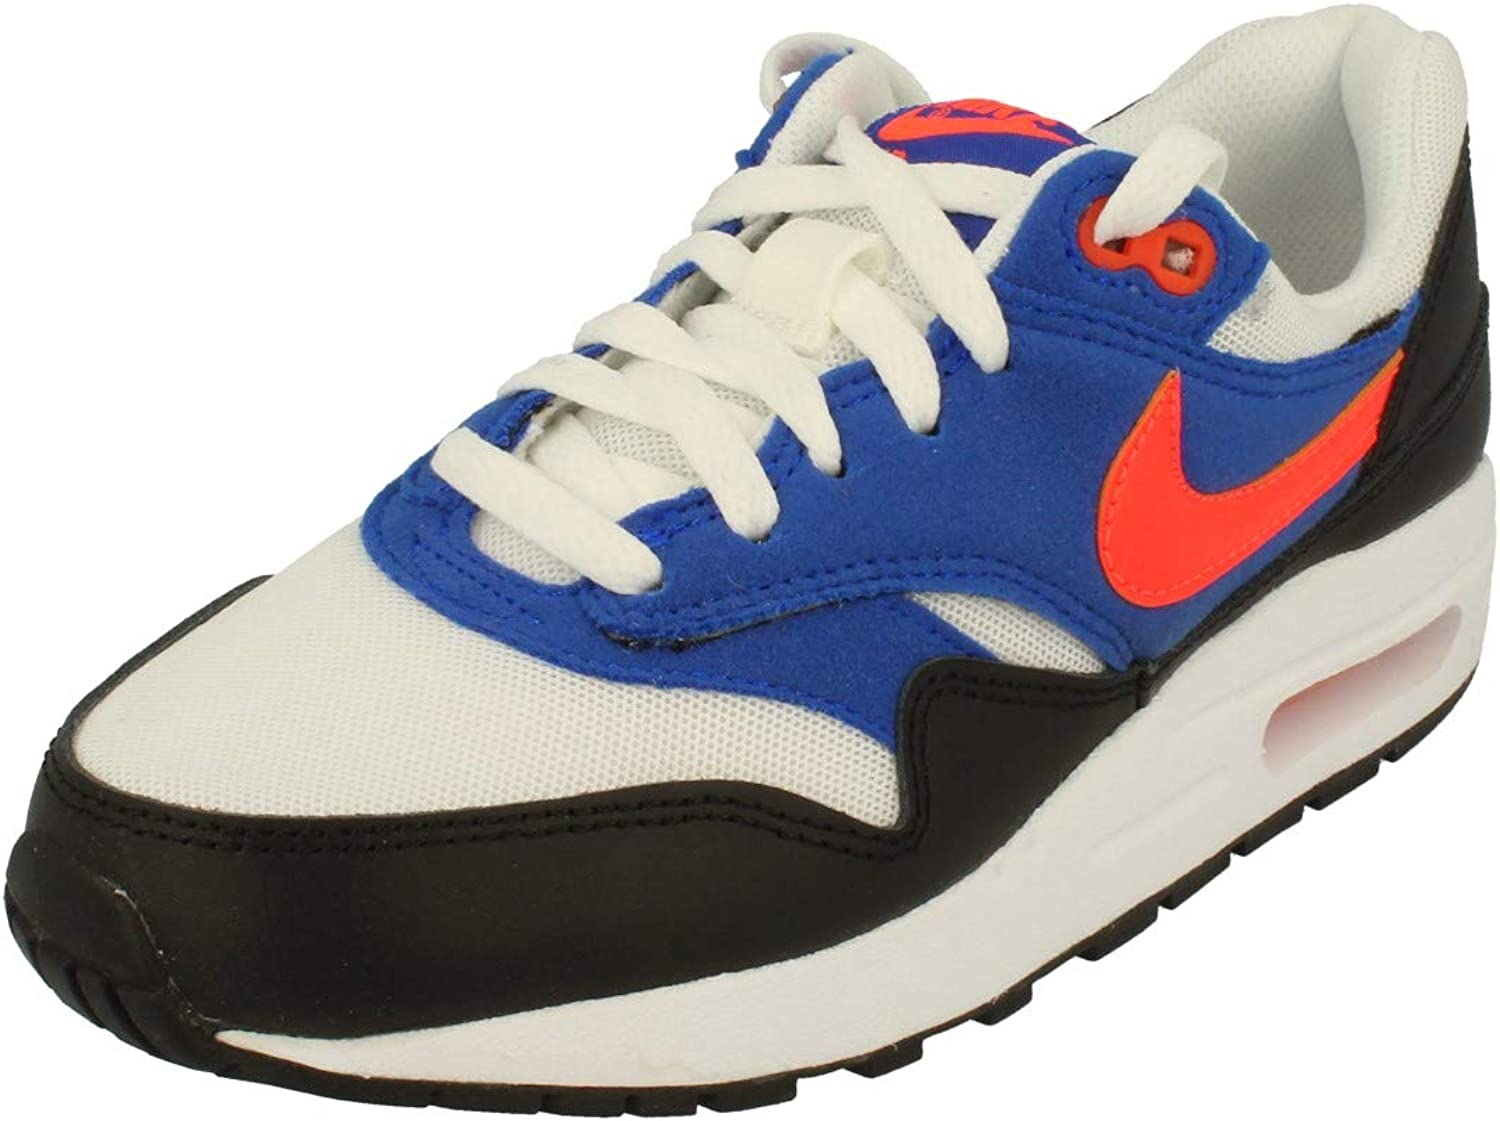 Nike Air Max 1 BG Junior Trainers Ar1180 Sneakers shoes